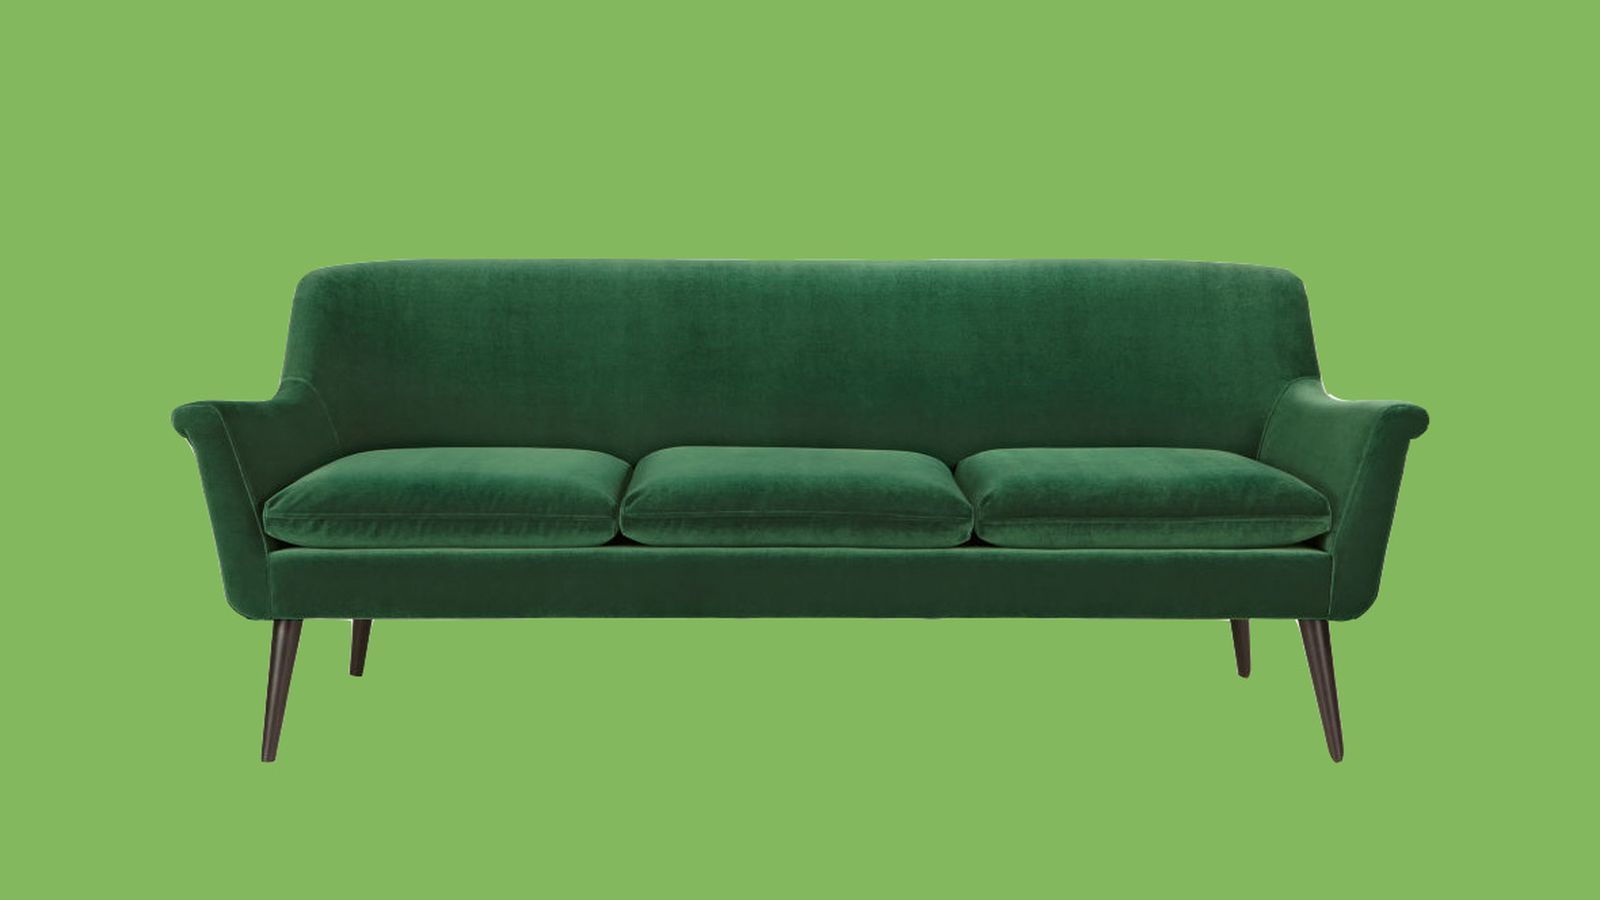 emerald green velvet sofa bed colorful fabric sofas a pinterest perfect that 39s comfortable too curbed